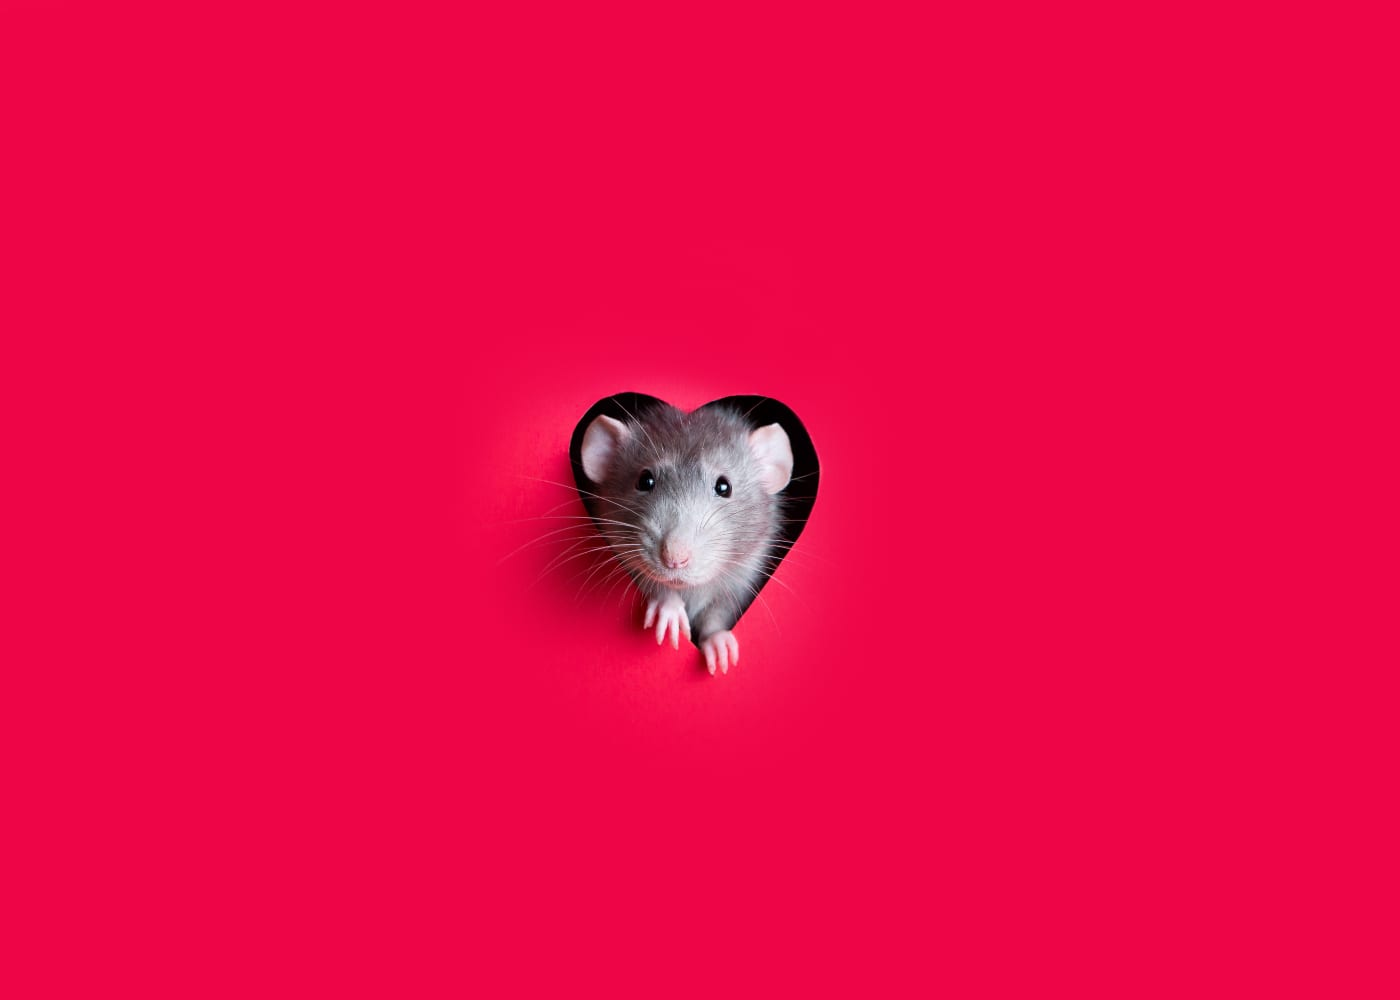 10 fun facts about all things rats to celebrate Chinese New Year